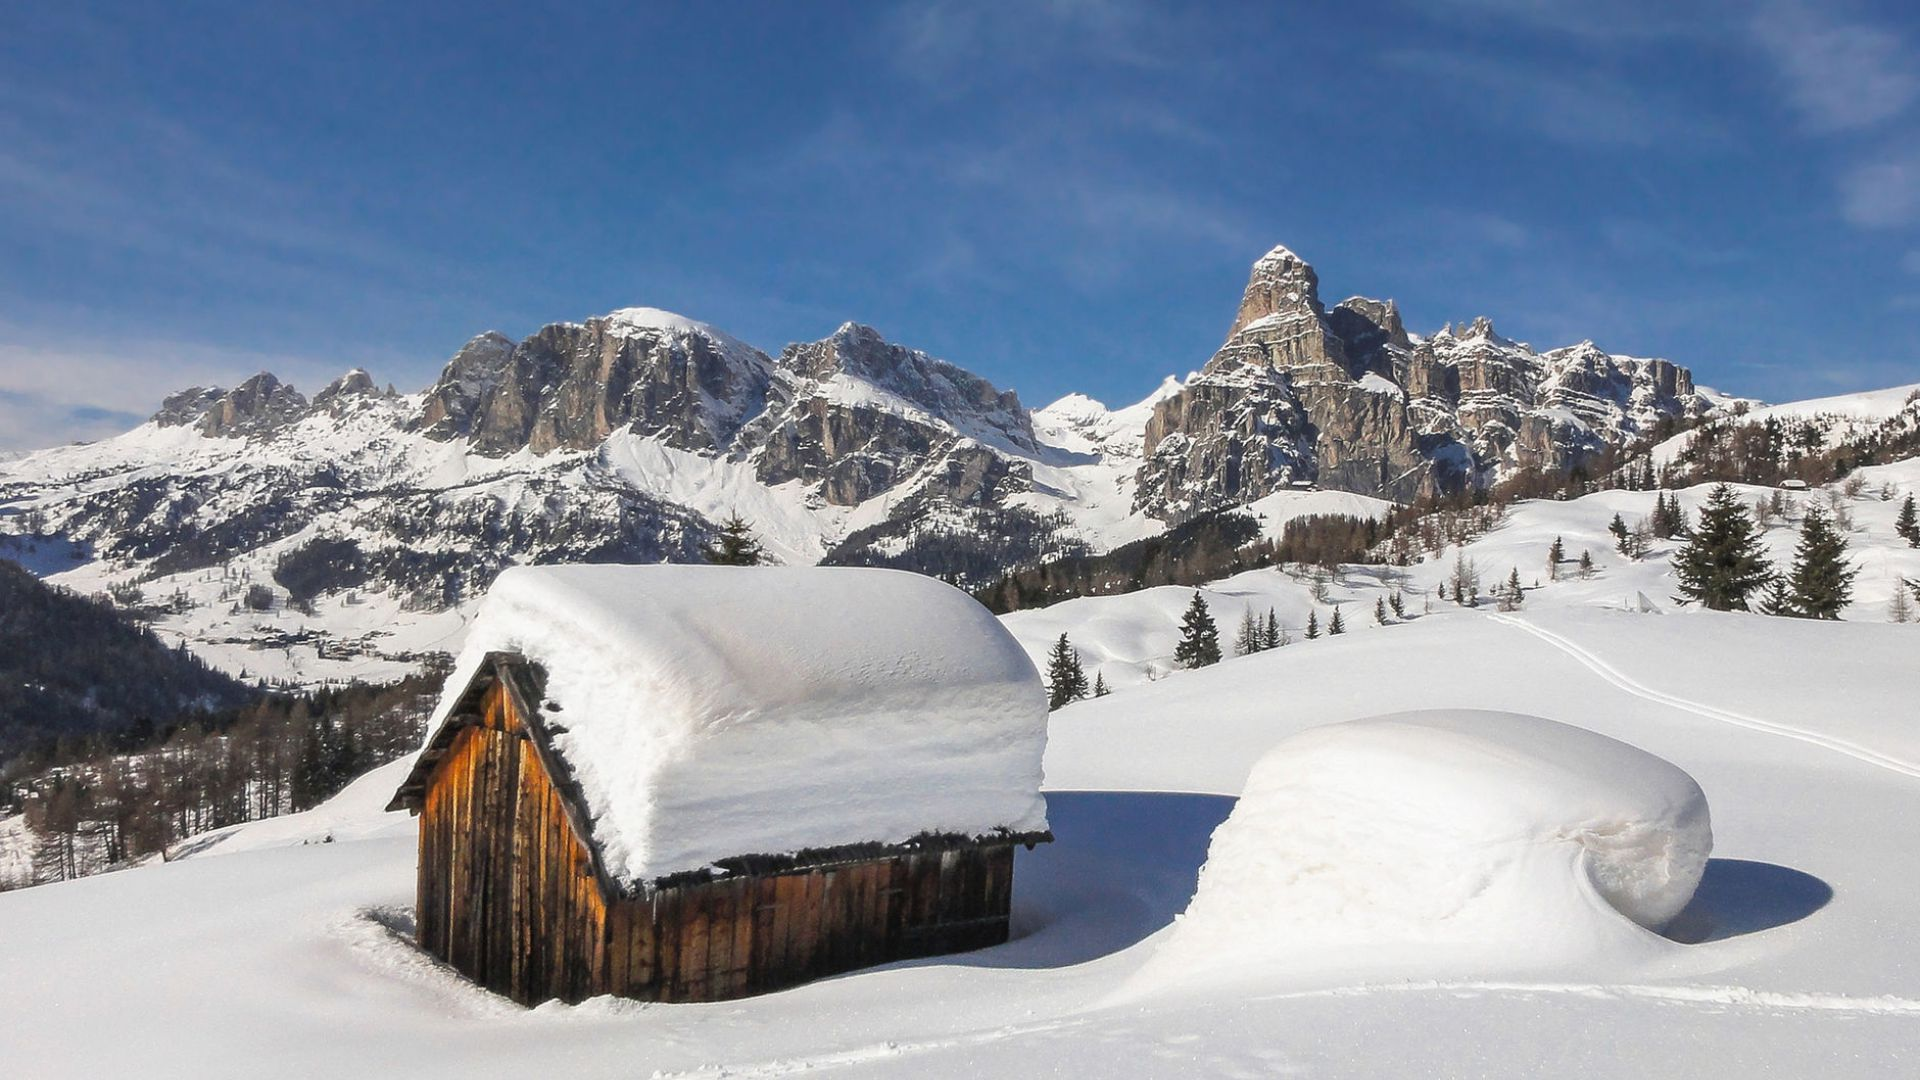 Image: from Armentarola (a locality next to San Cassiano)